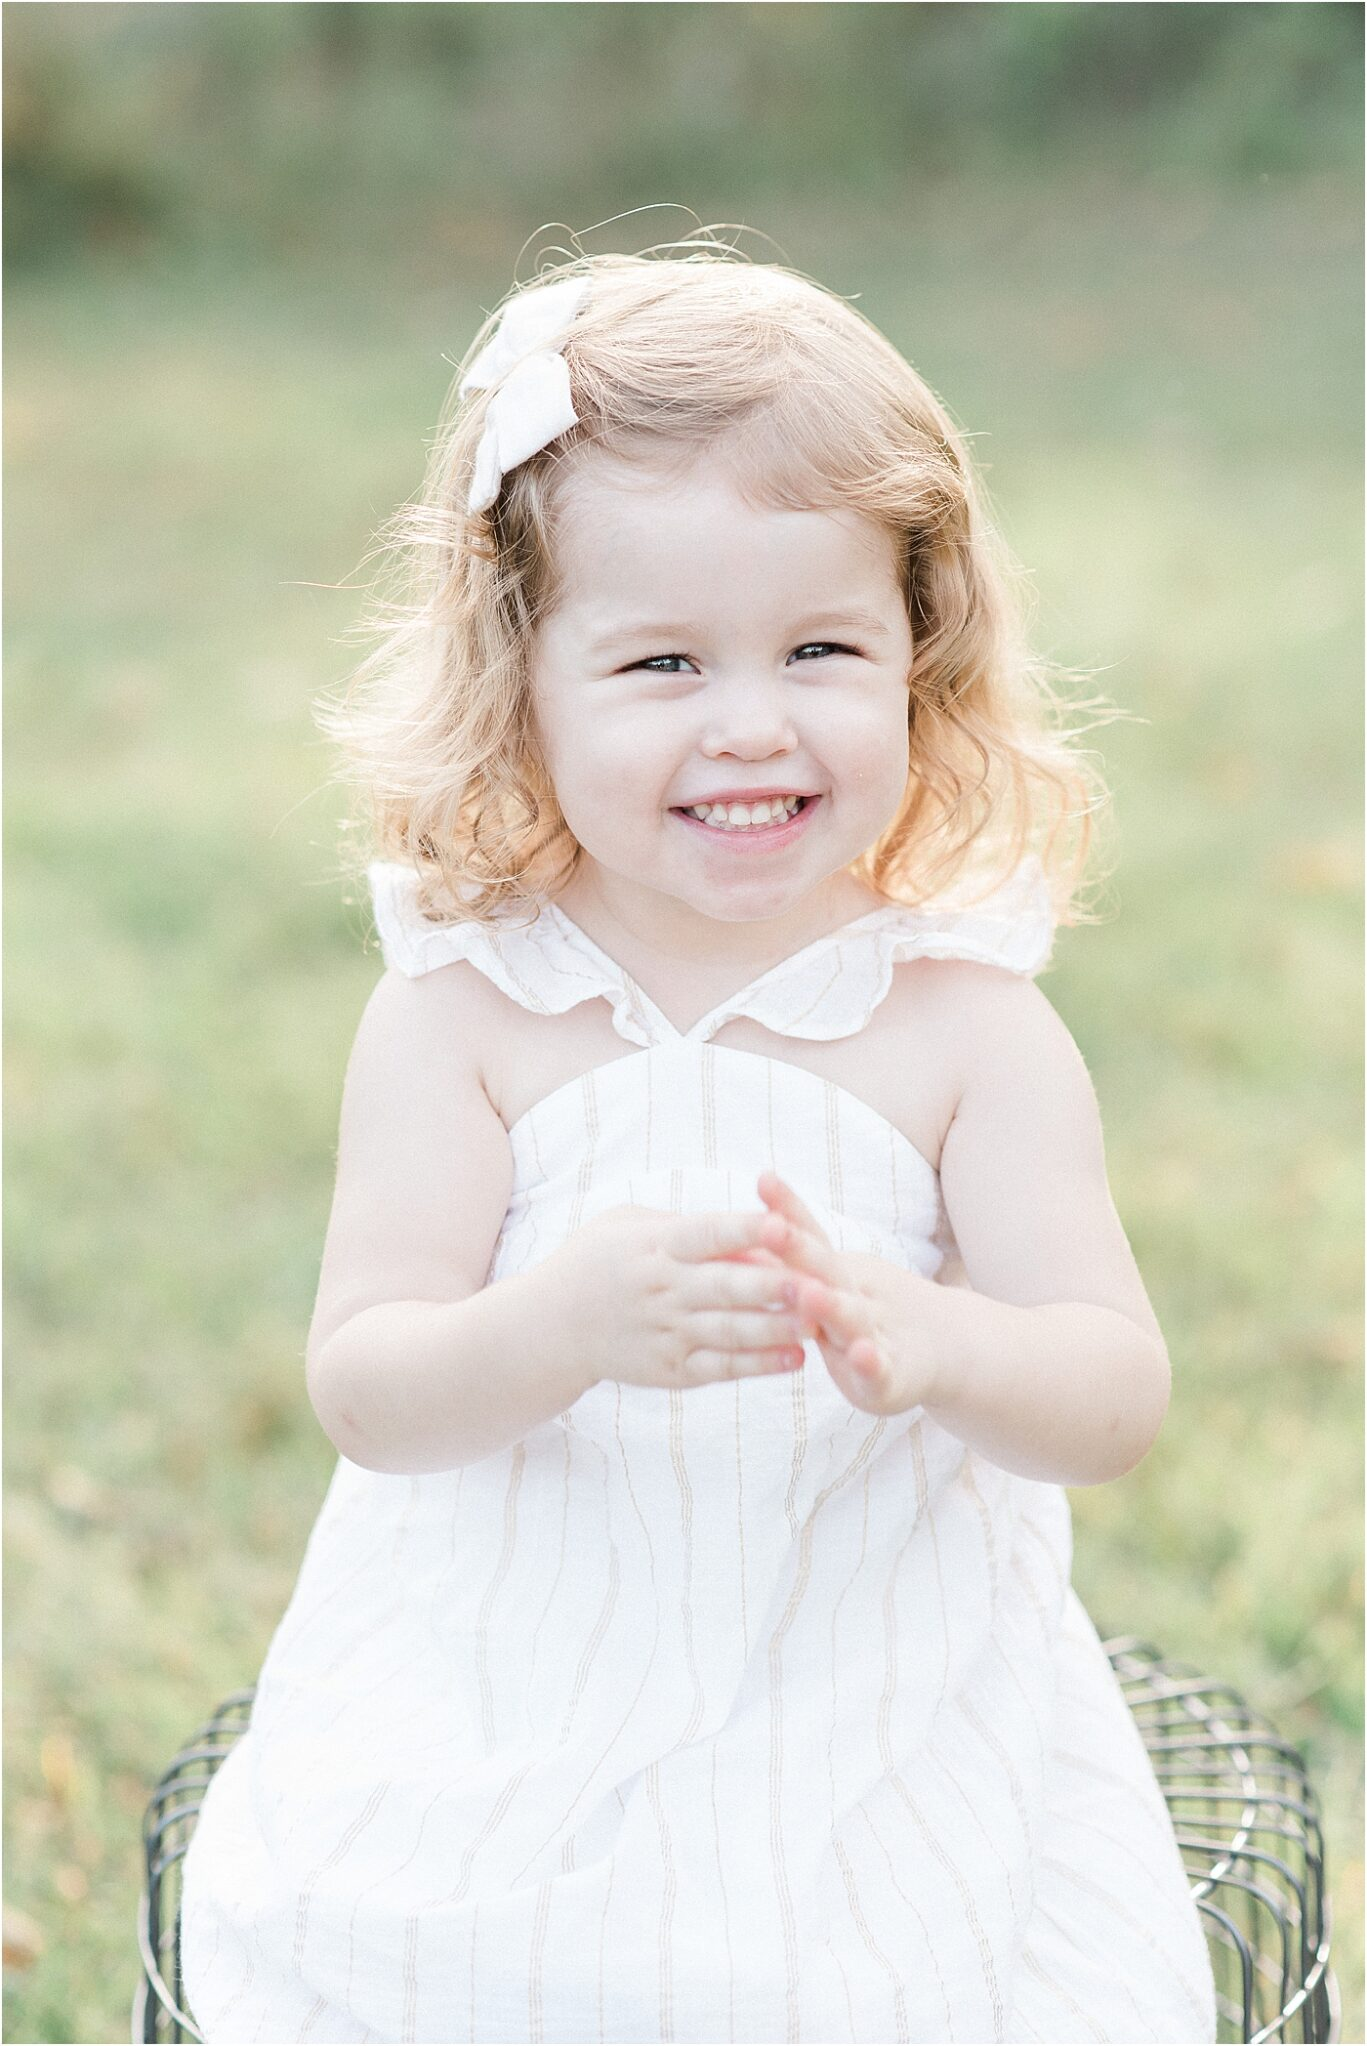 Little girl wearing a white dress and bow and smiling for family photos with Lindsay Konopa Photography.